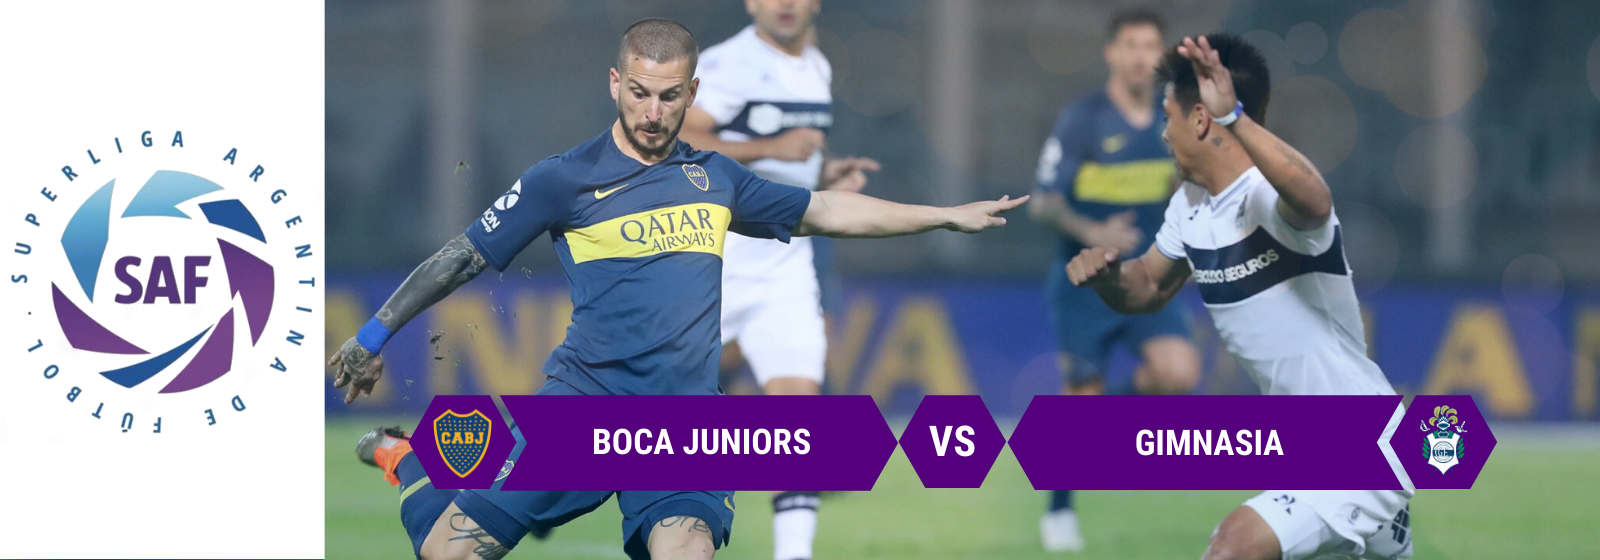 Asianconnect: Boca vs Gimnasia Odds for March 07, 2020